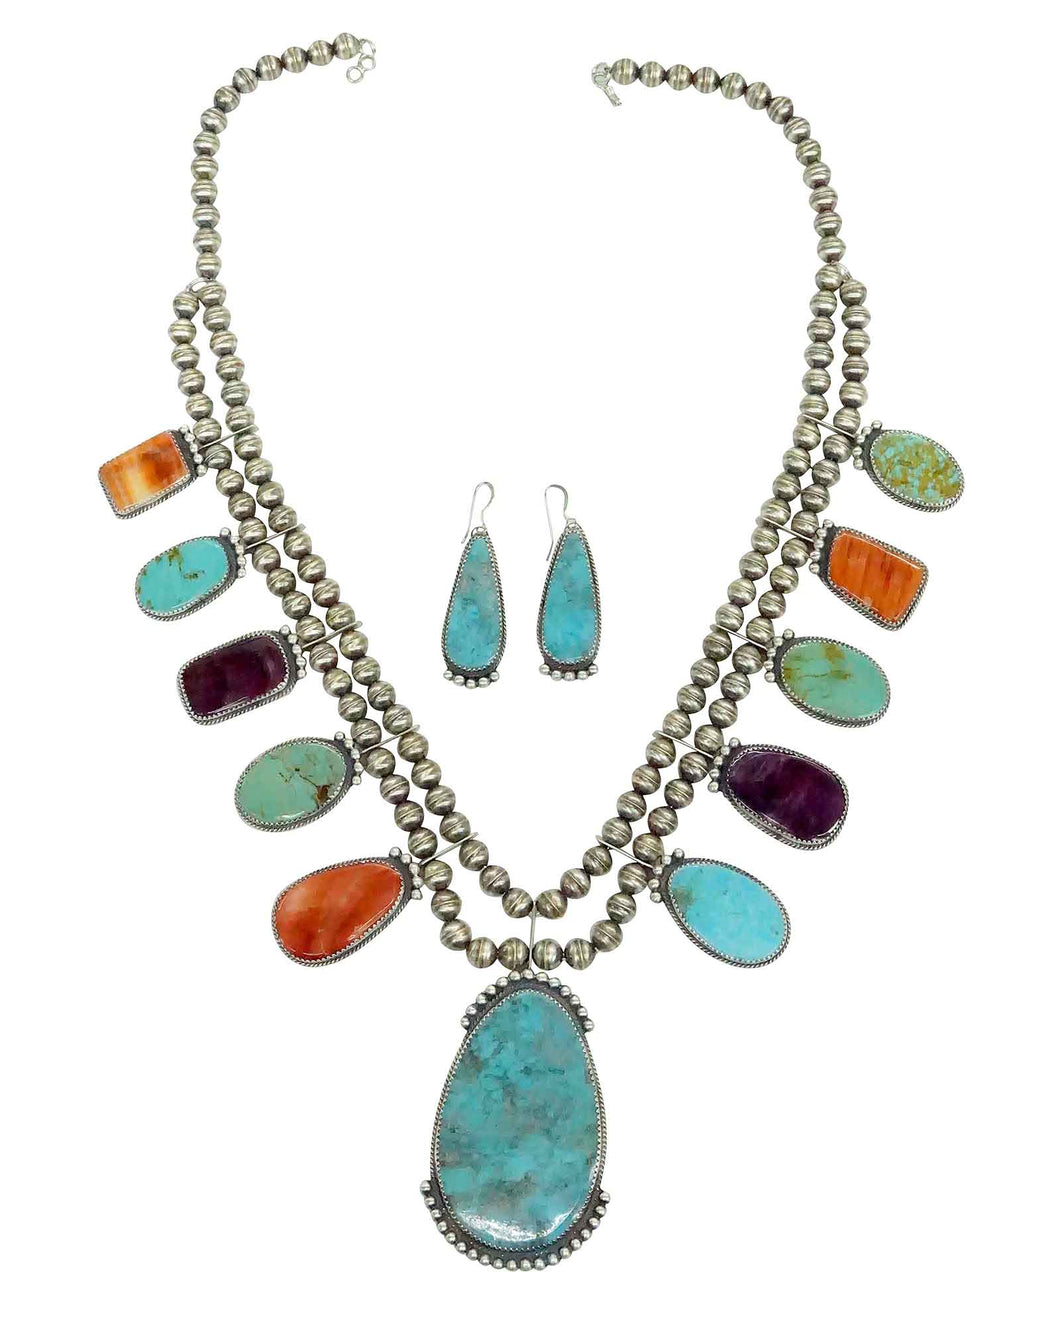 Betty Joe, Necklace, Earrings, Turquoise, Spiny Oyster Shell, Navajo Made, 23